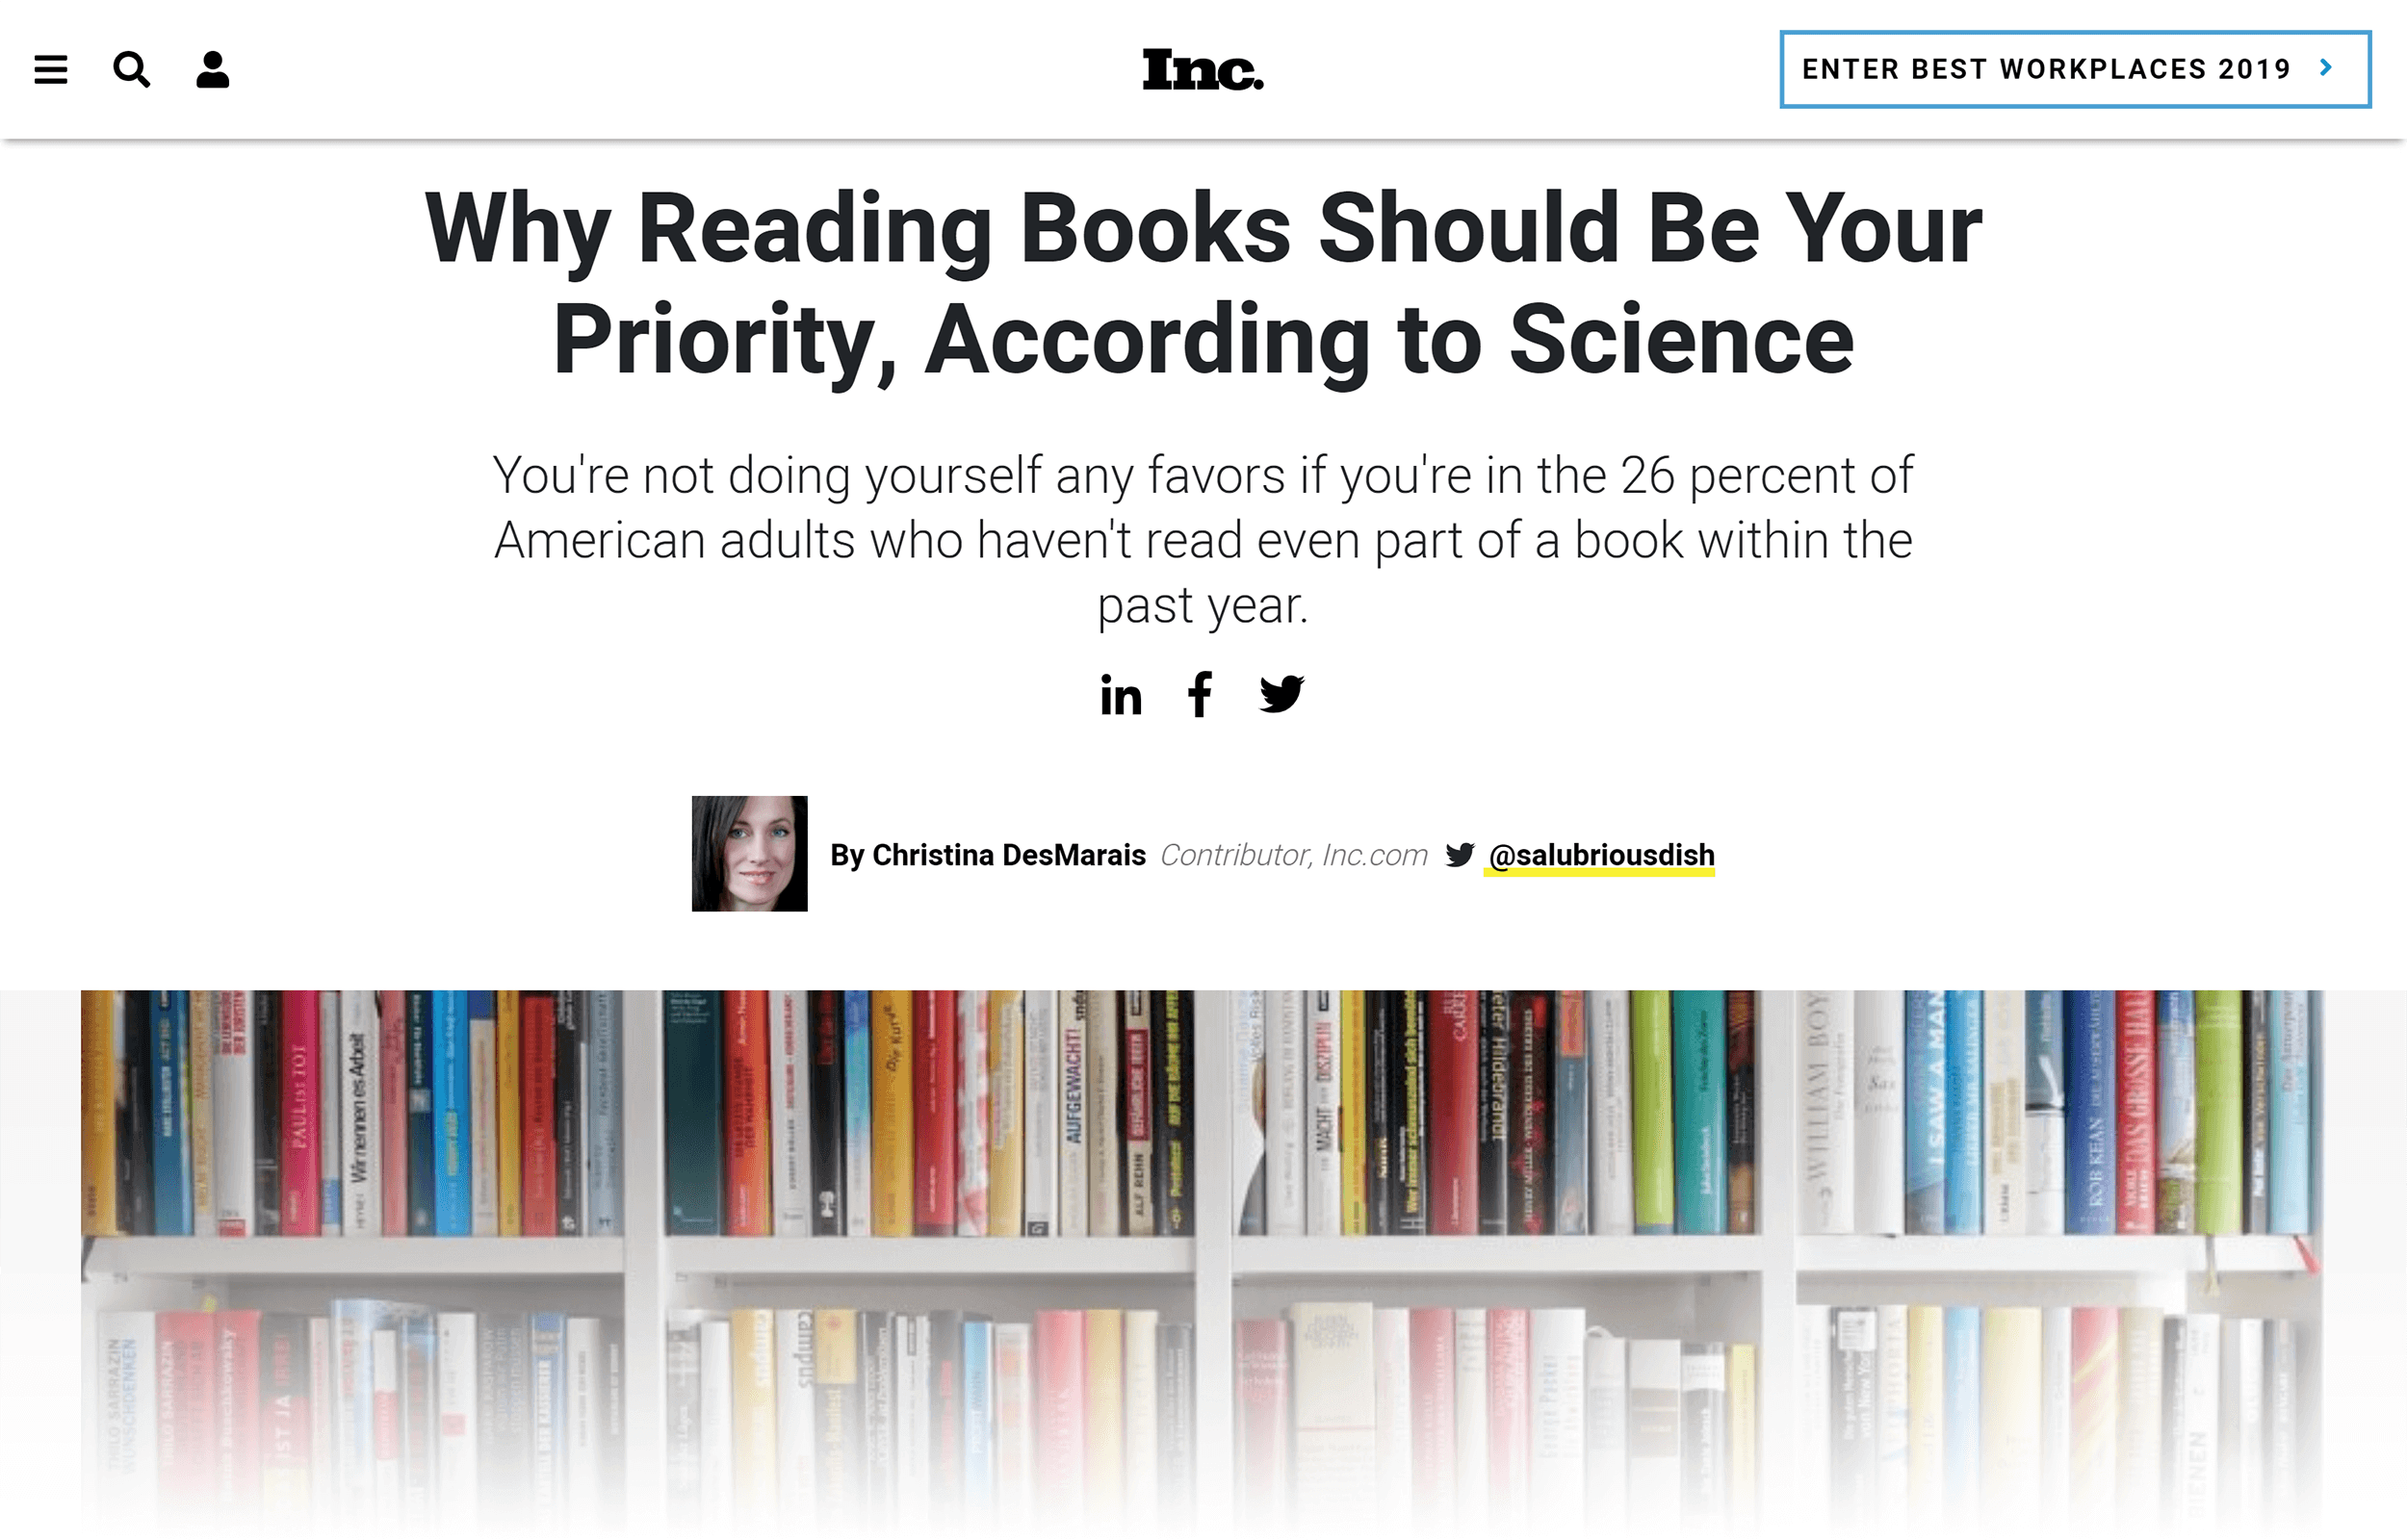 Why reading books should be your priority